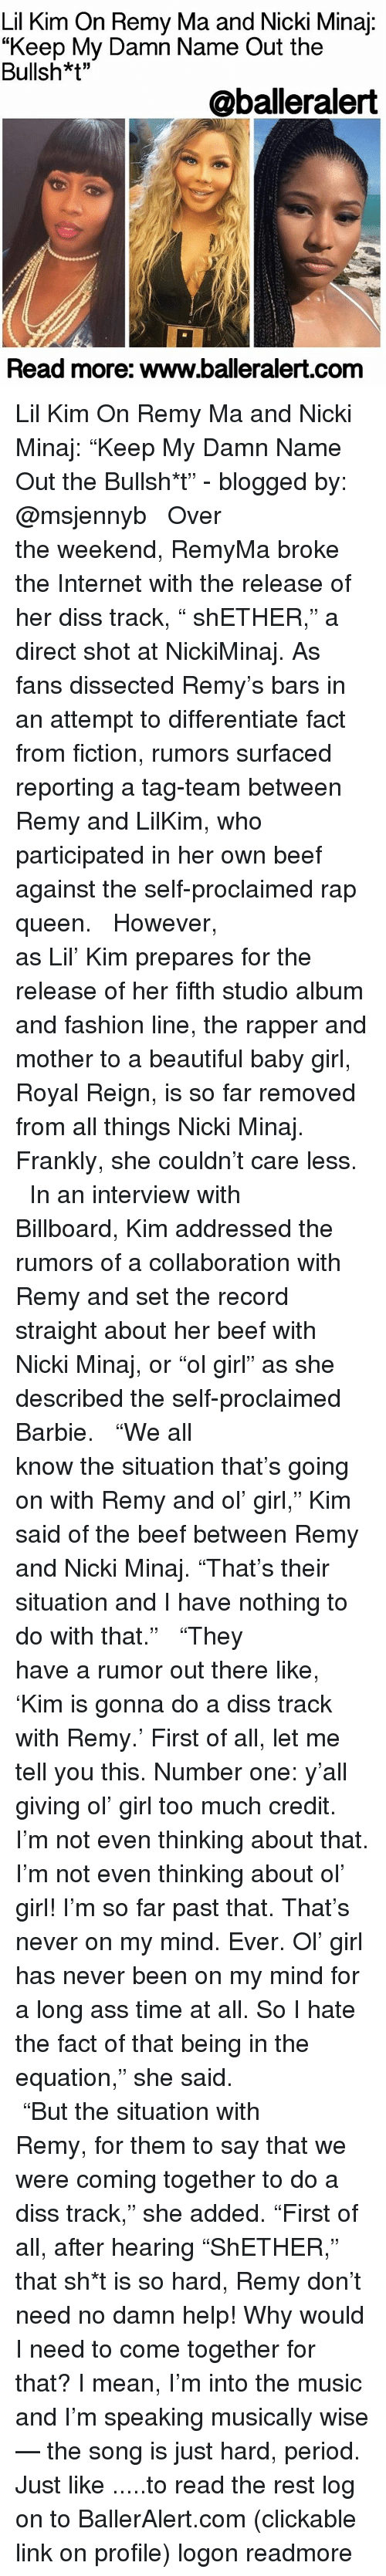 """tag team: Lil Kim On Remy Ma and Nicki Minaj  """"Keep My Damn Name Out the  Bullsh*t""""  @balleralert  Read more: www.balleralert.com Lil Kim On Remy Ma and Nicki Minaj: """"Keep My Damn Name Out the Bullsh*t"""" - blogged by: @msjennyb ⠀⠀⠀⠀⠀⠀⠀⠀⠀ ⠀⠀⠀⠀⠀⠀⠀⠀⠀ Over the weekend, RemyMa broke the Internet with the release of her diss track, """" shETHER,"""" a direct shot at NickiMinaj. As fans dissected Remy's bars in an attempt to differentiate fact from fiction, rumors surfaced reporting a tag-team between Remy and LilKim, who participated in her own beef against the self-proclaimed rap queen. ⠀⠀⠀⠀⠀⠀⠀⠀⠀ ⠀⠀⠀⠀⠀⠀⠀⠀⠀ However, as Lil' Kim prepares for the release of her fifth studio album and fashion line, the rapper and mother to a beautiful baby girl, Royal Reign, is so far removed from all things Nicki Minaj. Frankly, she couldn't care less. ⠀⠀⠀⠀⠀⠀⠀⠀⠀ ⠀⠀⠀⠀⠀⠀⠀⠀⠀ In an interview with Billboard, Kim addressed the rumors of a collaboration with Remy and set the record straight about her beef with Nicki Minaj, or """"ol girl"""" as she described the self-proclaimed Barbie. ⠀⠀⠀⠀⠀⠀⠀⠀⠀ ⠀⠀⠀⠀⠀⠀⠀⠀⠀ """"We all know the situation that's going on with Remy and ol' girl,"""" Kim said of the beef between Remy and Nicki Minaj. """"That's their situation and I have nothing to do with that."""" ⠀⠀⠀⠀⠀⠀⠀⠀⠀ ⠀⠀⠀⠀⠀⠀⠀⠀⠀ """"They have a rumor out there like, 'Kim is gonna do a diss track with Remy.' First of all, let me tell you this. Number one: y'all giving ol' girl too much credit. I'm not even thinking about that. I'm not even thinking about ol' girl! I'm so far past that. That's never on my mind. Ever. Ol' girl has never been on my mind for a long ass time at all. So I hate the fact of that being in the equation,"""" she said. ⠀⠀⠀⠀⠀⠀⠀⠀⠀ ⠀⠀⠀⠀⠀⠀⠀⠀⠀ """"But the situation with Remy, for them to say that we were coming together to do a diss track,"""" she added. """"First of all, after hearing """"ShETHER,"""" that sh*t is so hard, Remy don't need no damn help! Why would I need to come together for that? I mean, I'm into the music and I'm speaking mu"""